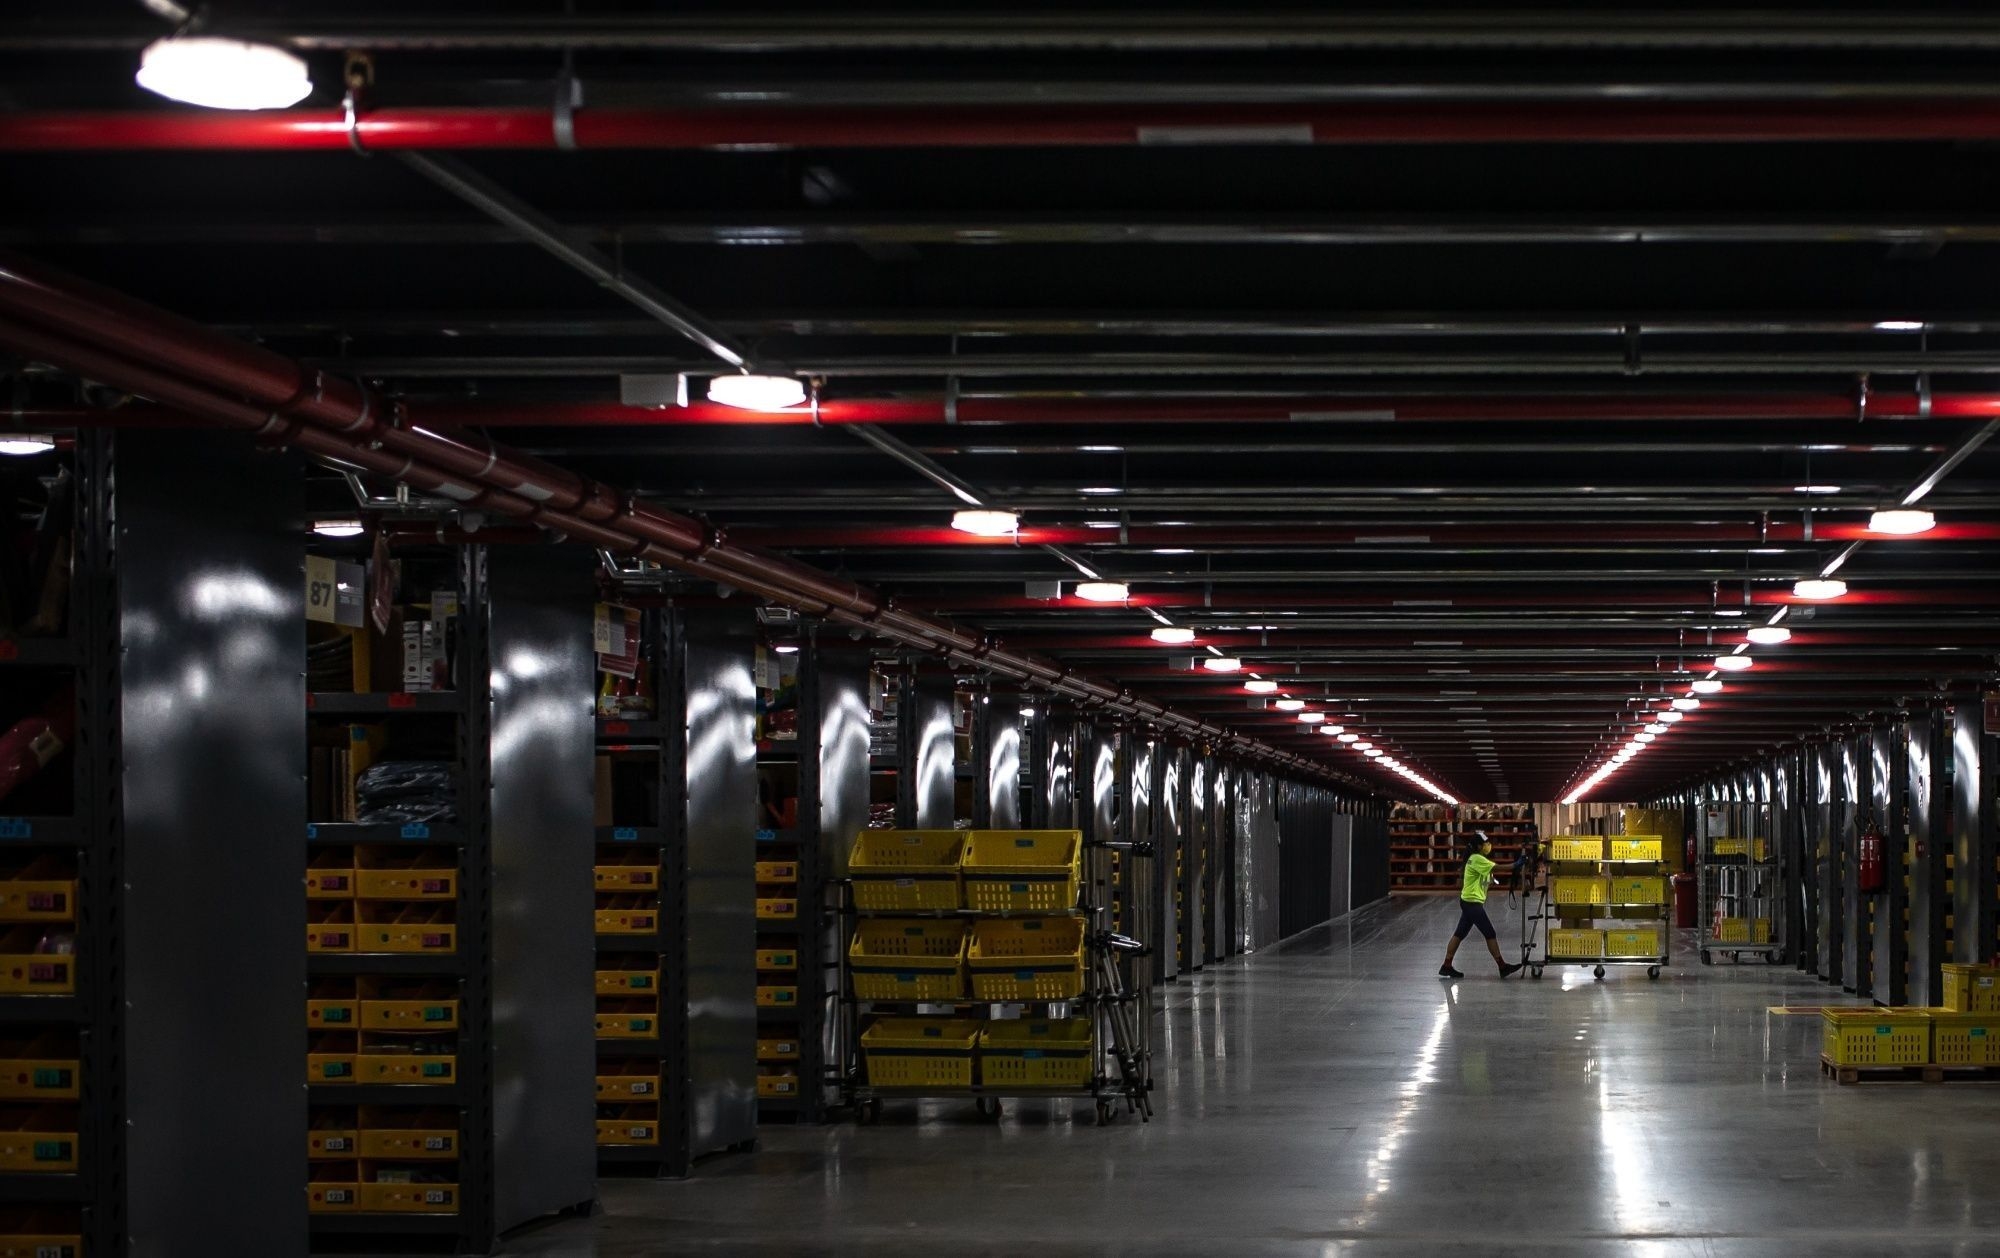 A MercadoLibre Inc. Fulfillment Center On Black Friday